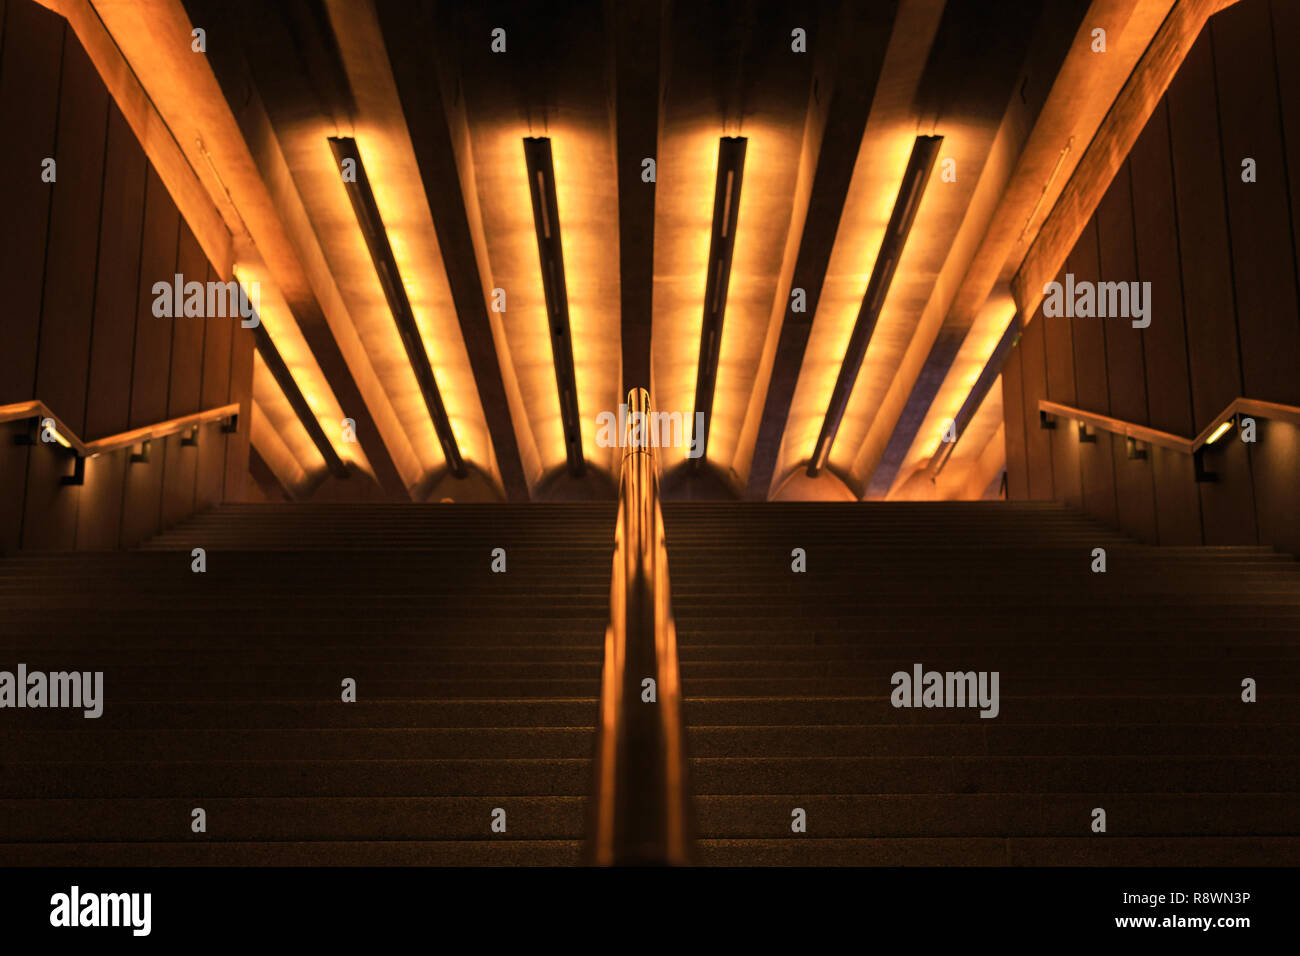 Sydney Opera House Photo Stock